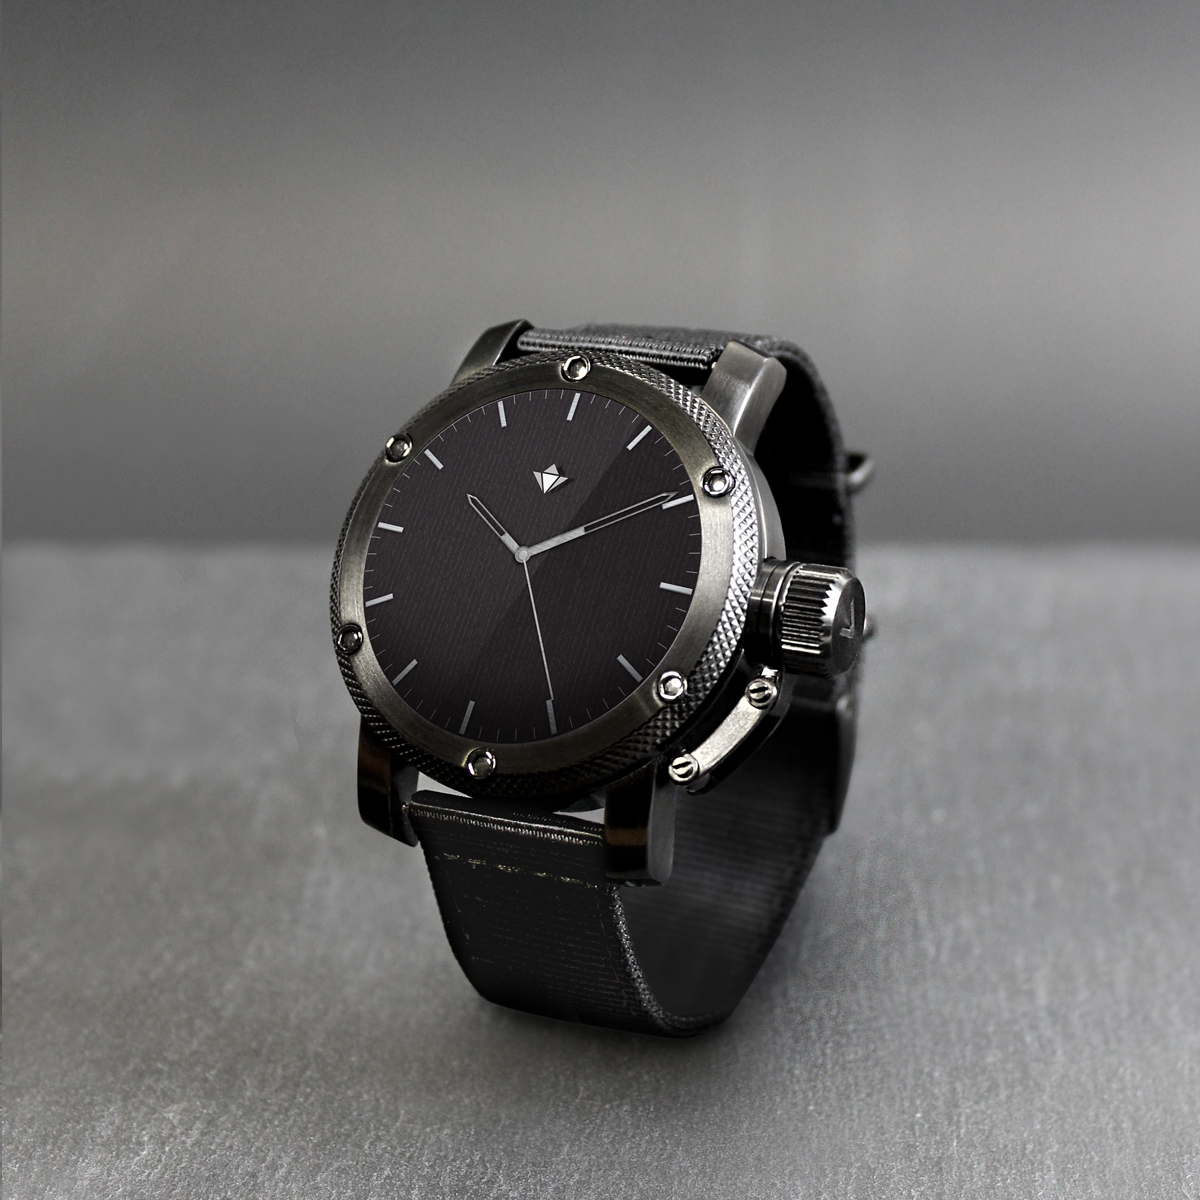 Henlen To Launch World-First Interchangeable Smartwatch On ...